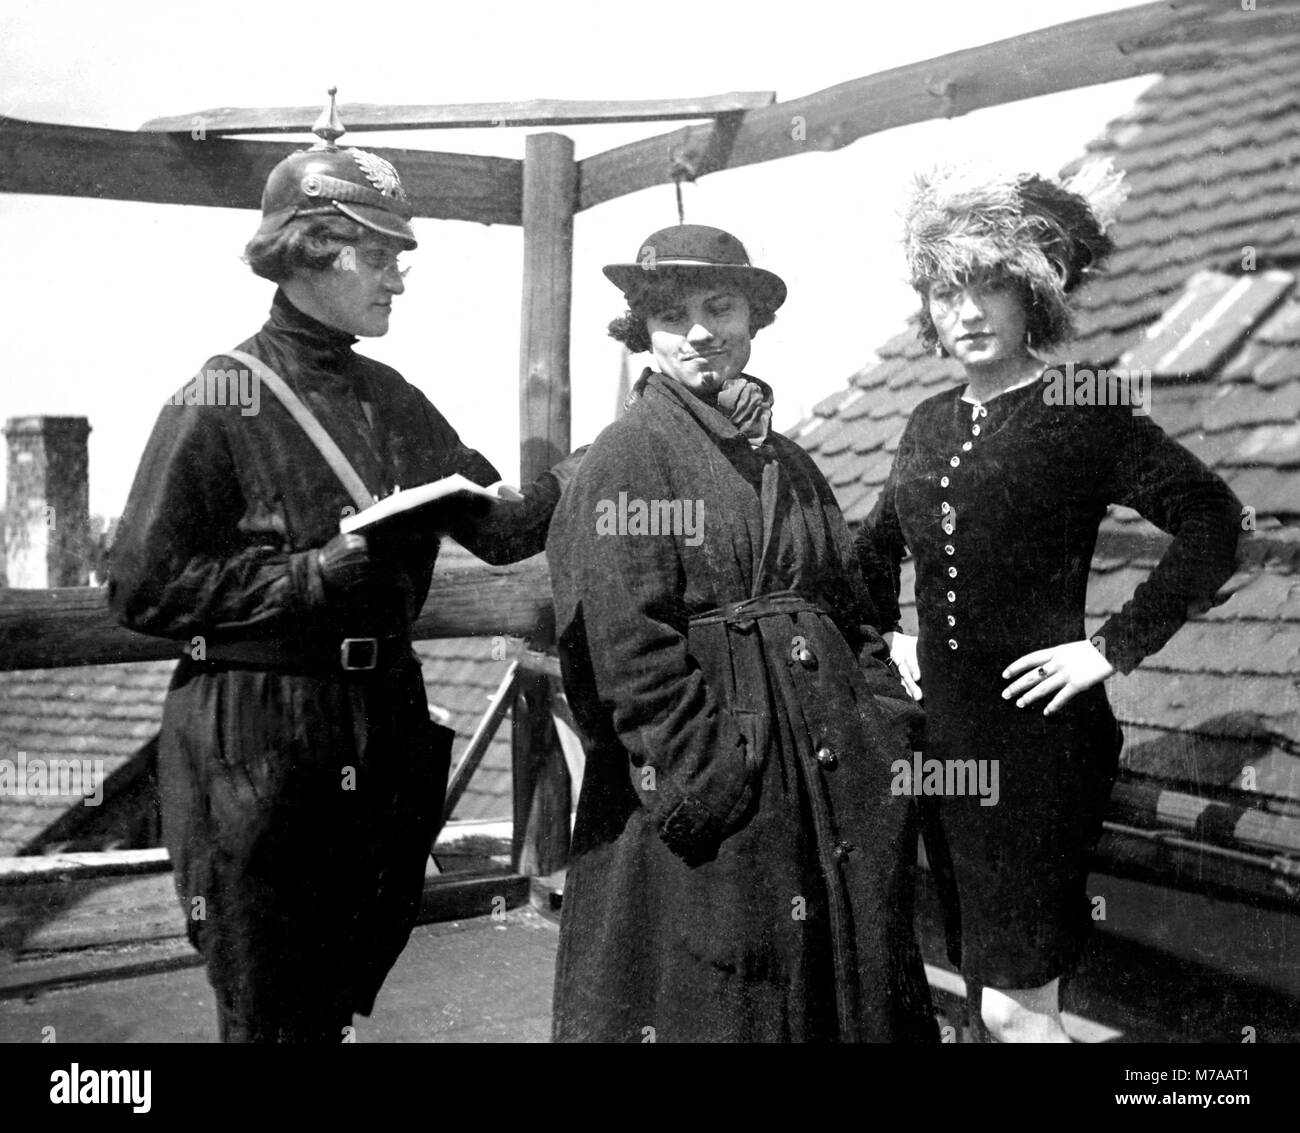 Three woman, woman playing a policewoman, 1930s, Germany - Stock Image